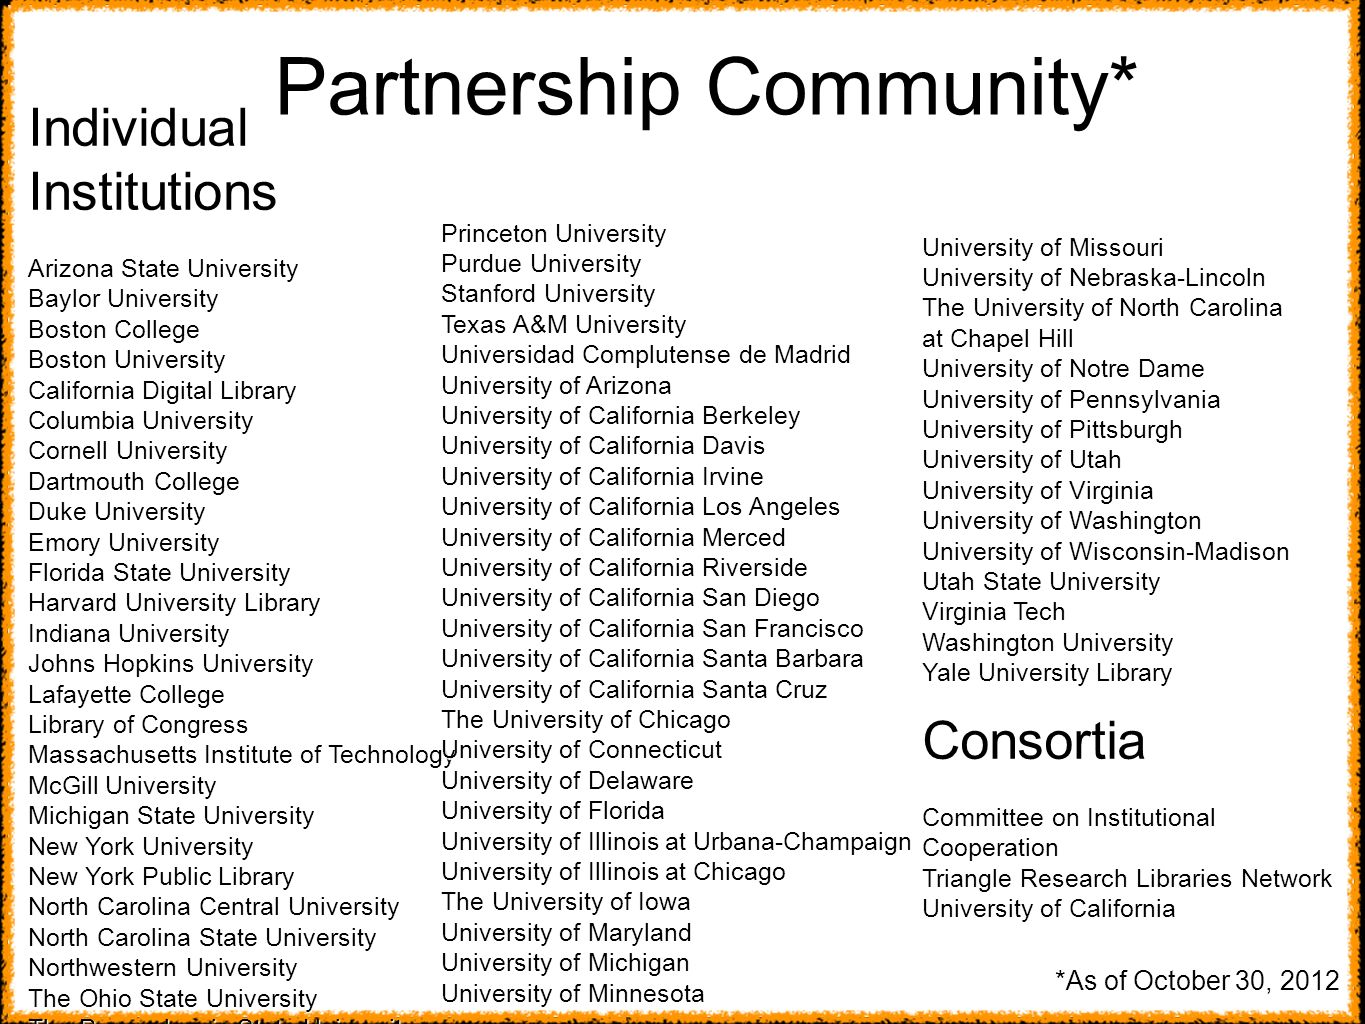 Partnership Community*